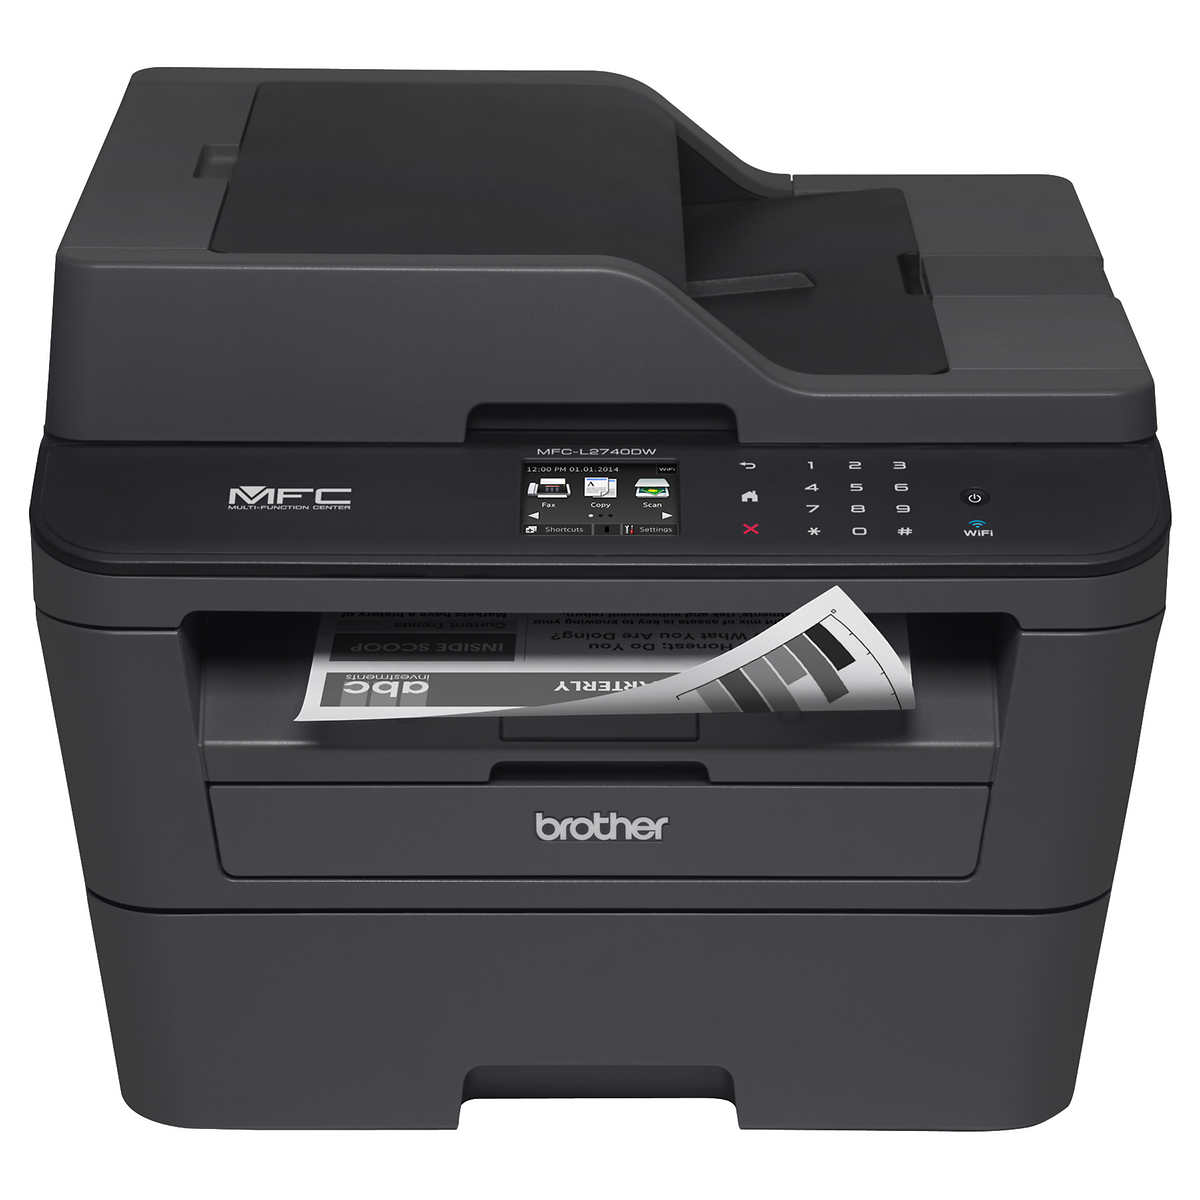 Hp hp color laser printers 11x17 - Brother Mfc L2740dw Compact Black White Laser All In One Printer With